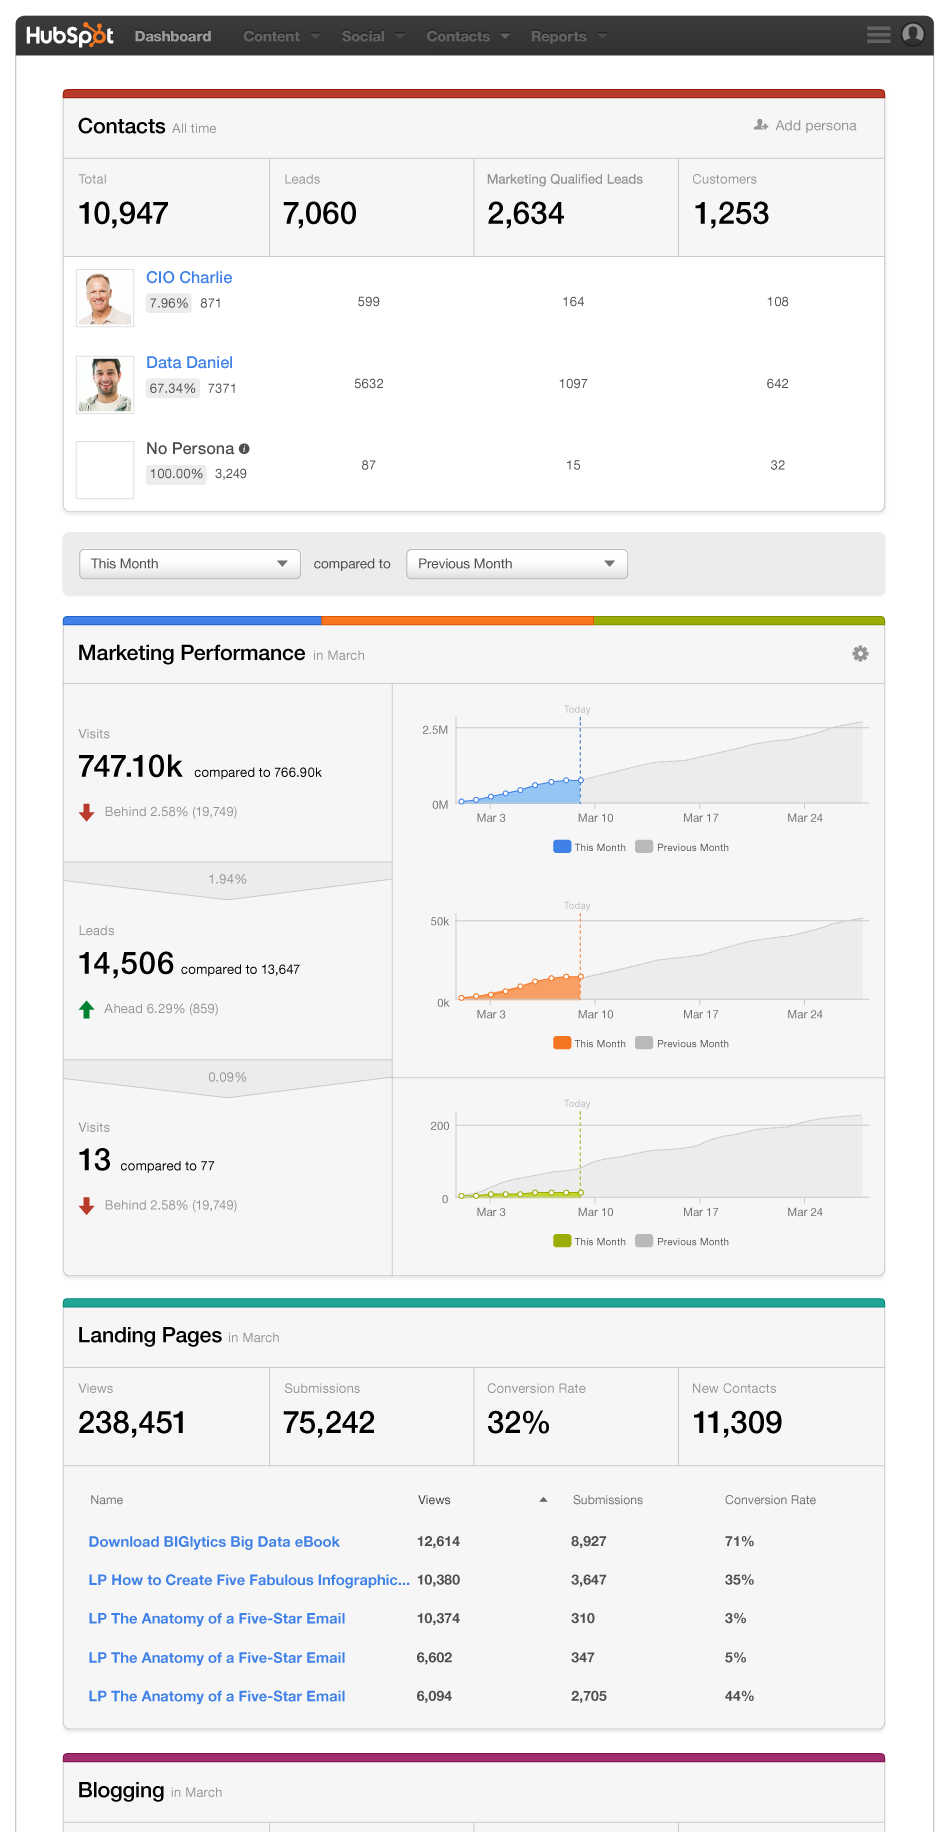 HubSpot Dashboard